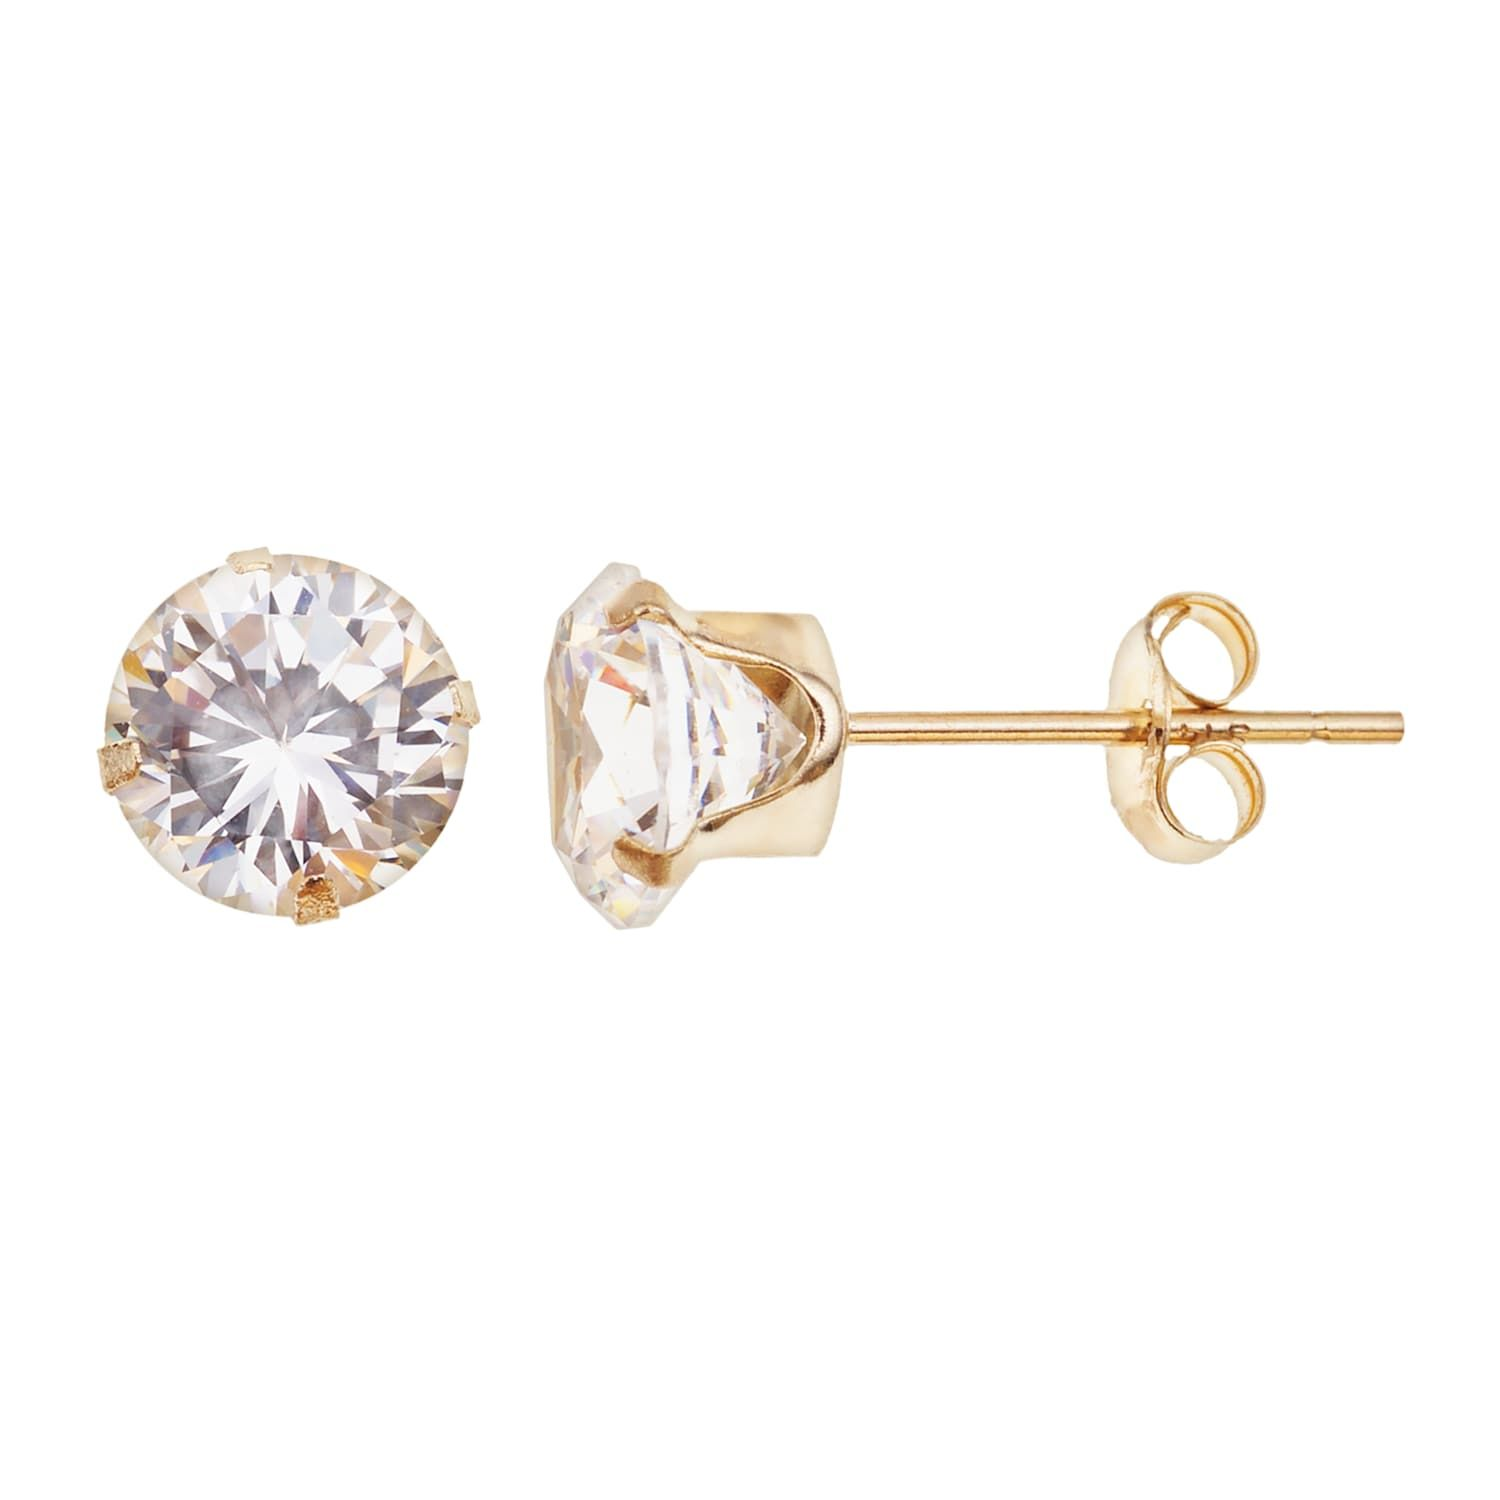 10k Gold Cubic Zirconia Stud Earrings Stud Earrings Jewelry Earrings